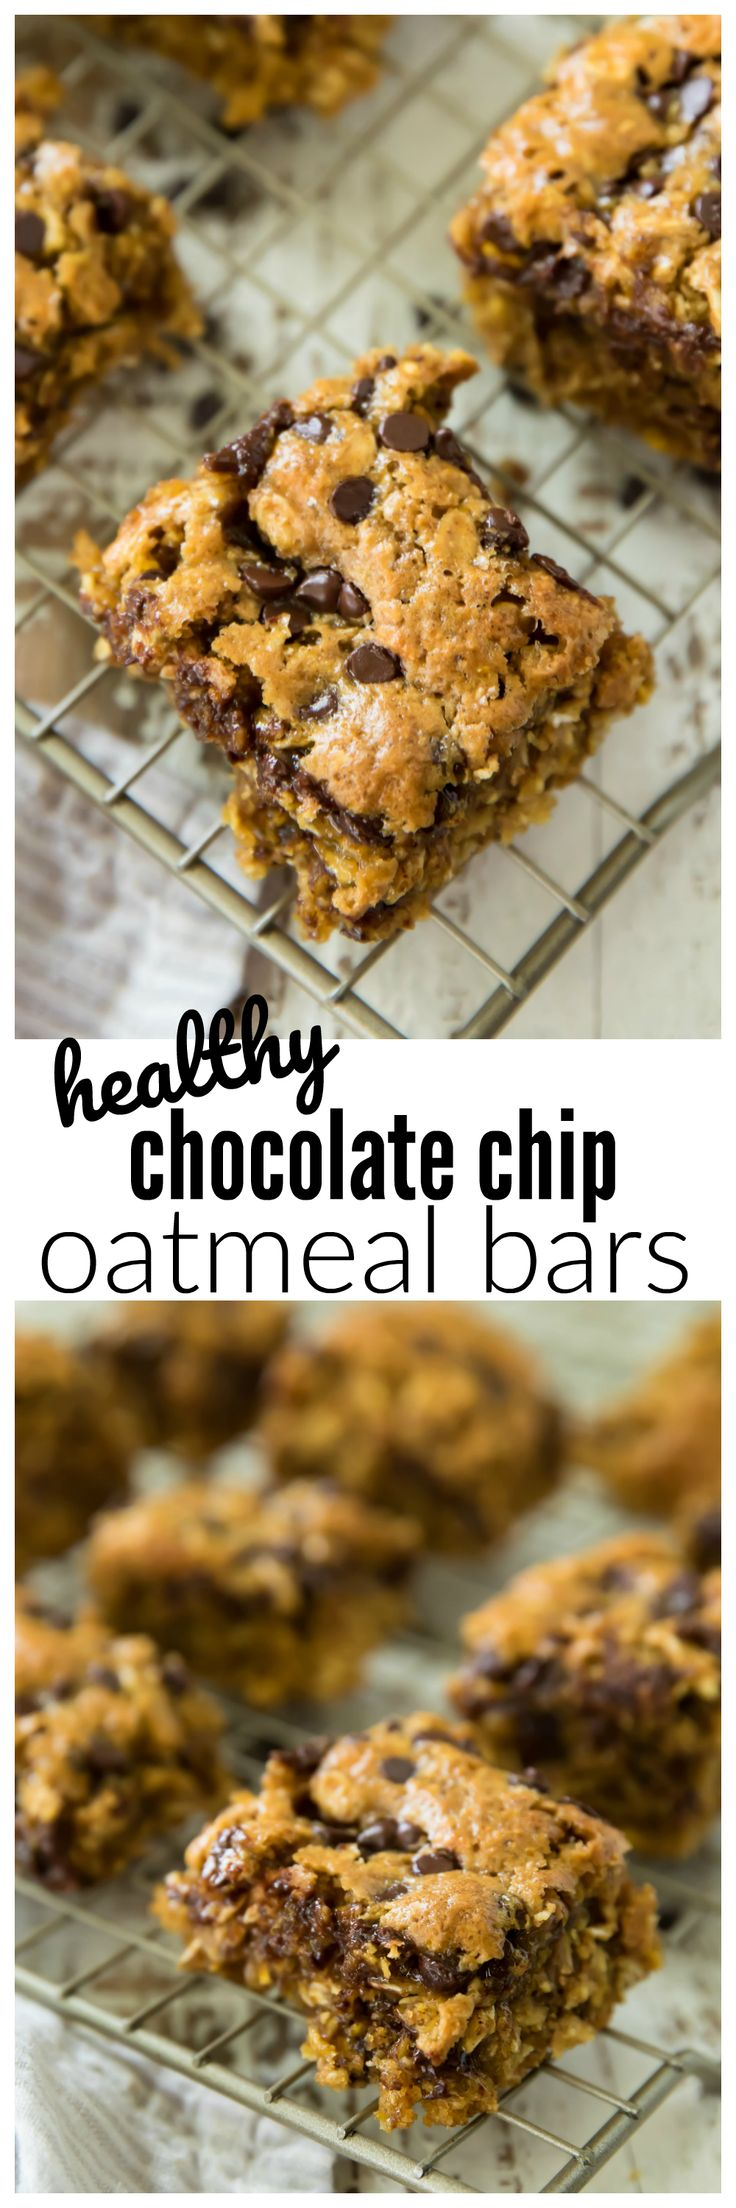 Healthy Chocolate Chip Oatmeal Bars are perfect as a quick and easy on-the-go breakfast, snack, or dessert! They are made with whole grain oats making them as healthy as your morning bowl of oatmeal! @Walmart #AD #StartAHealthyRelationship